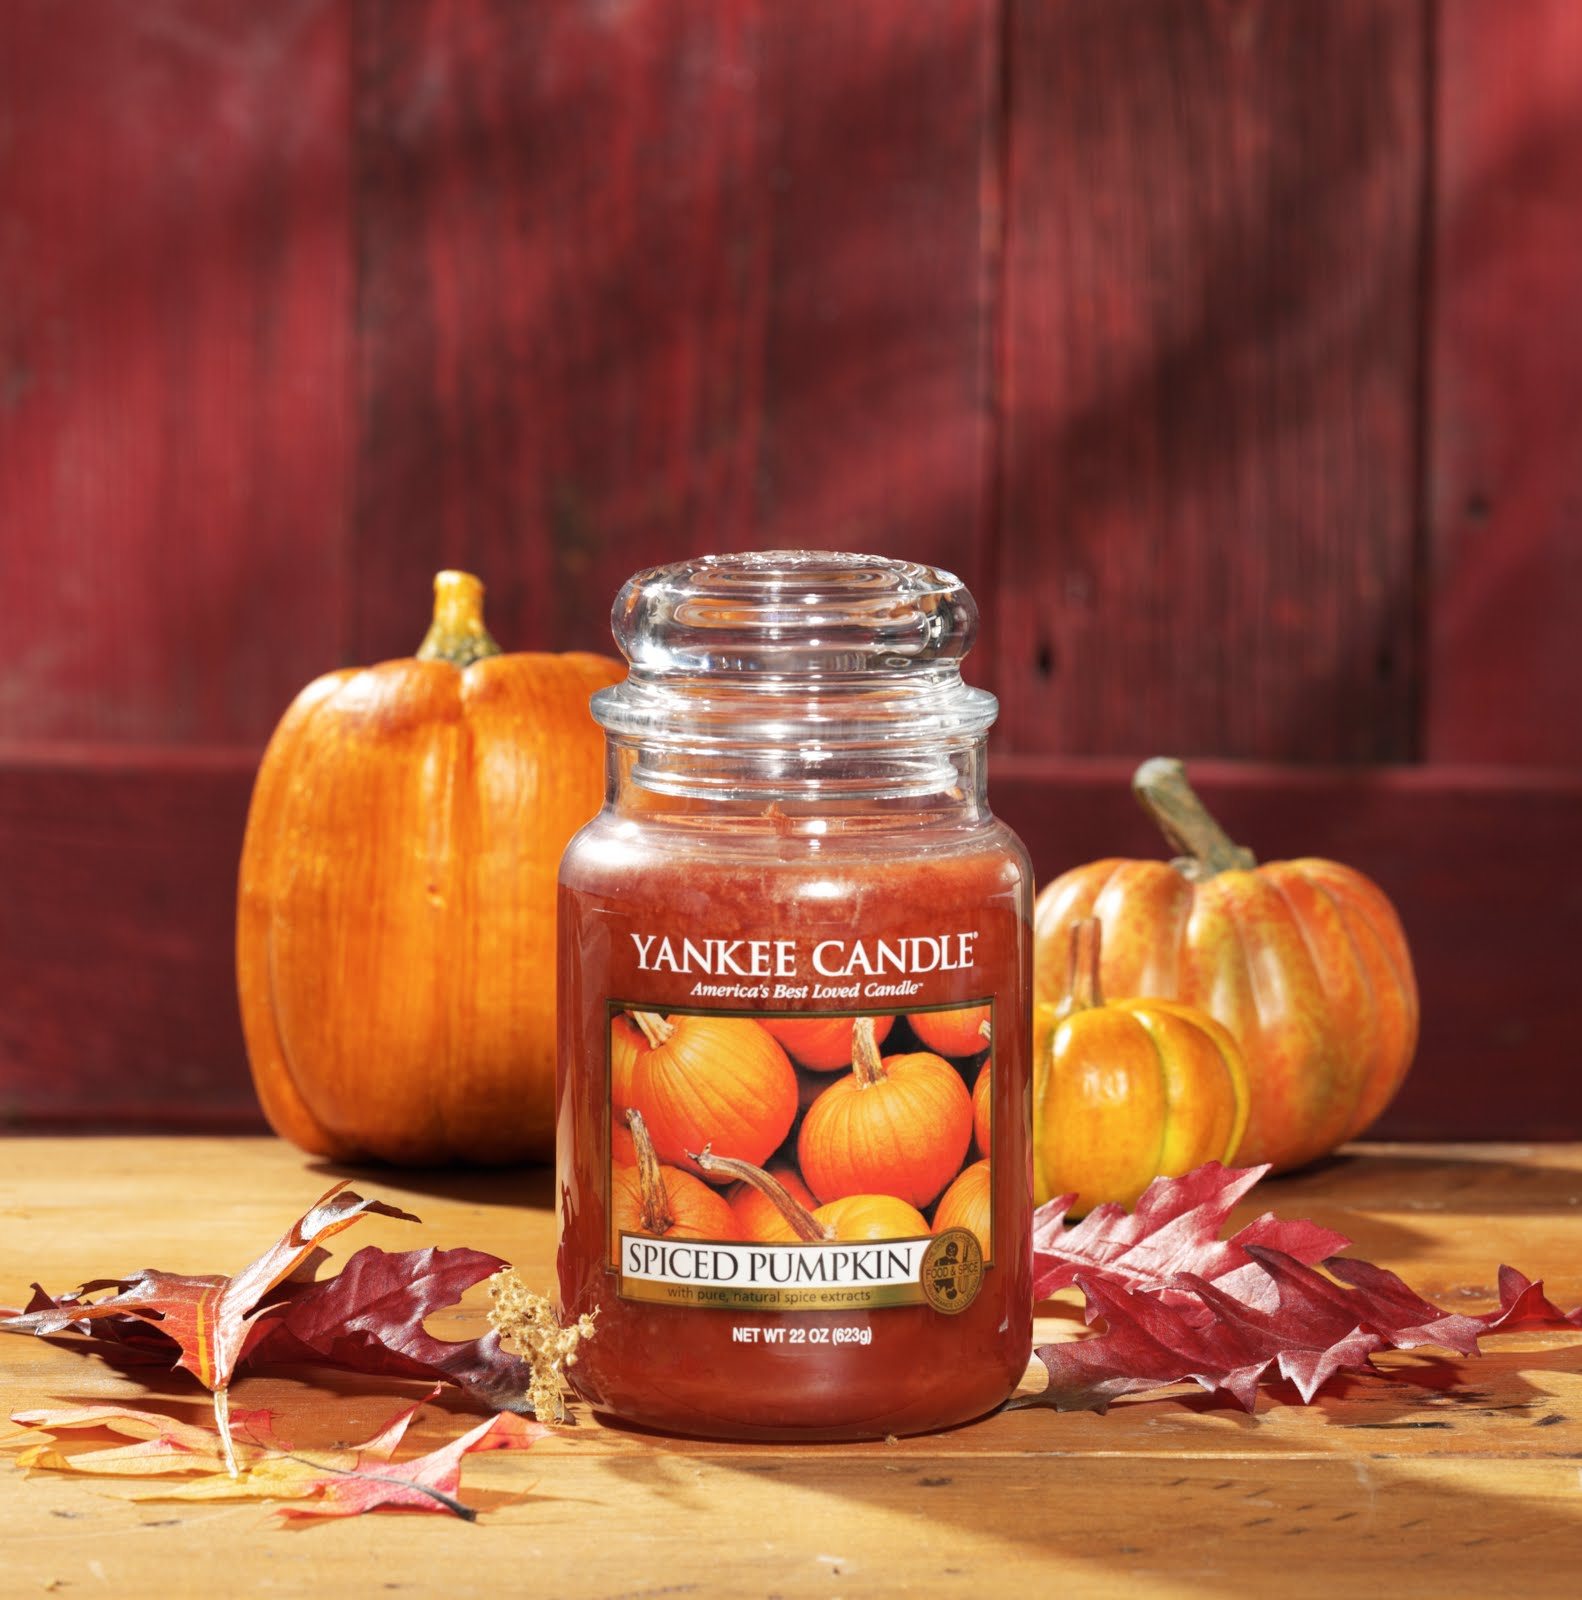 Carolyn's Candle Corner: True Confessions from a Yankee Candle Fanatic